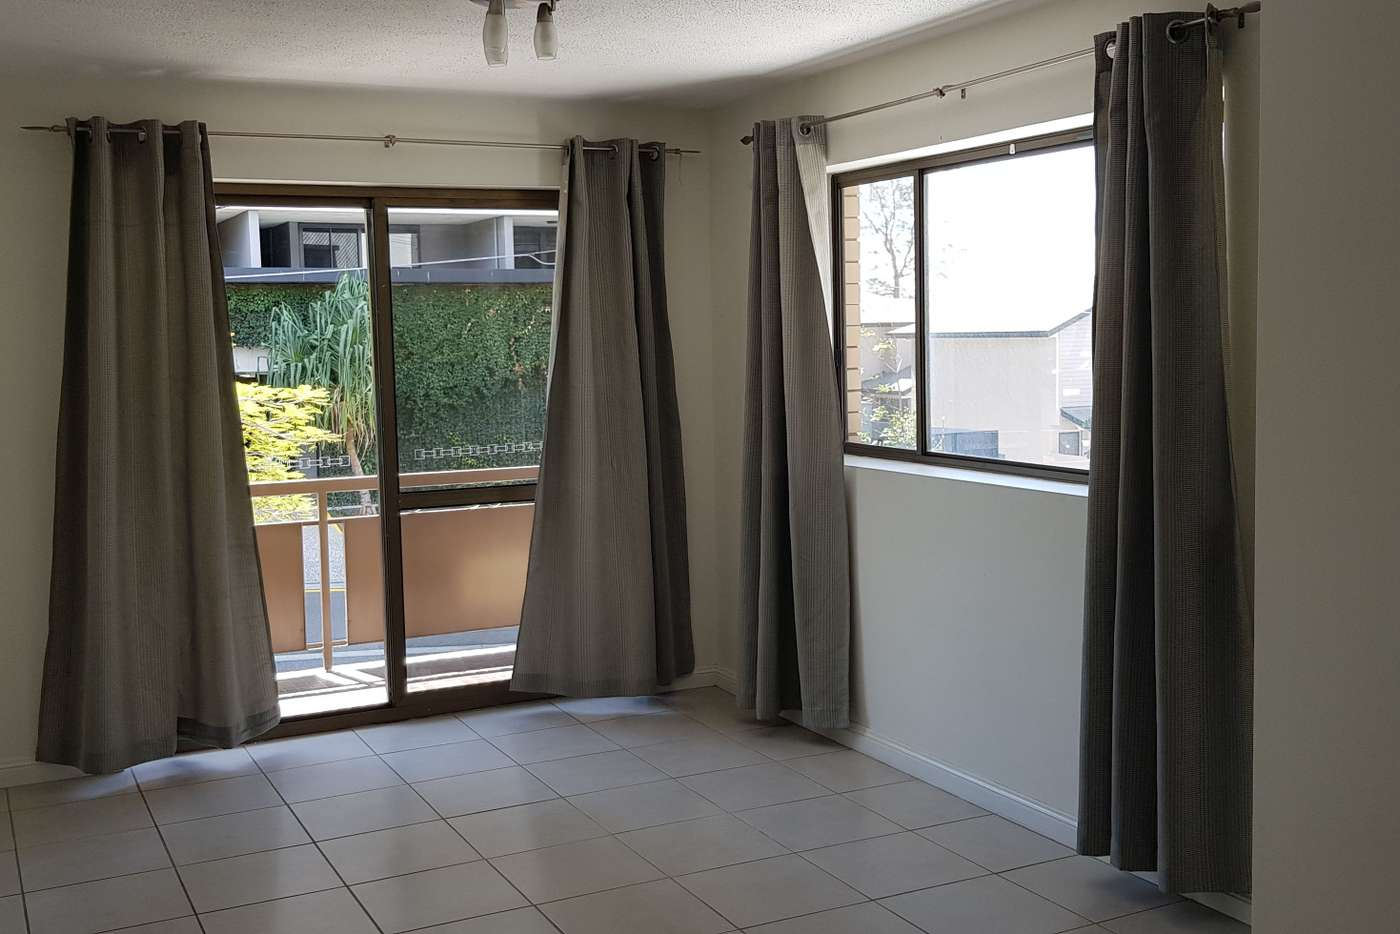 Sixth view of Homely unit listing, 1/60 Latham Street, Chermside QLD 4032